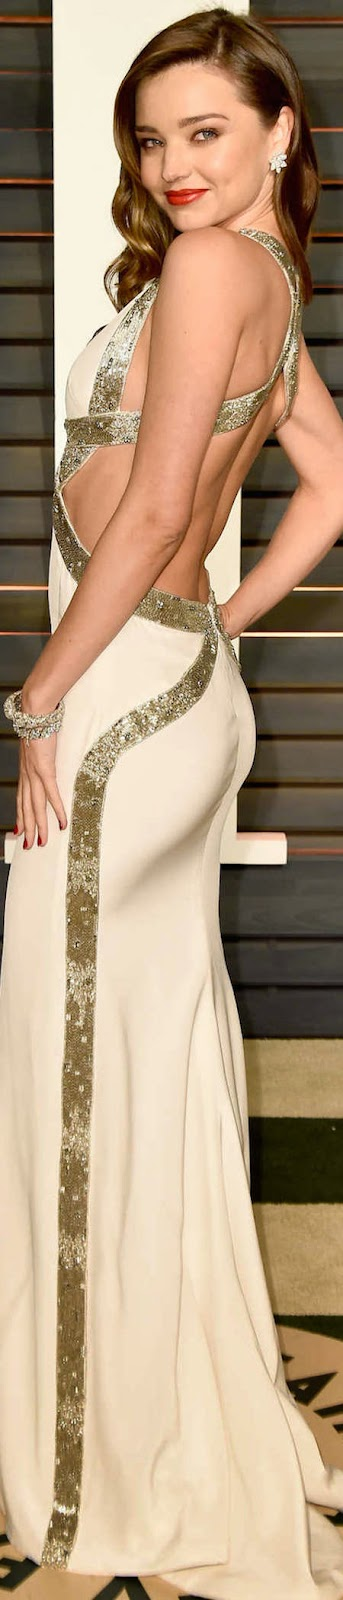 2015 Vanity Fair Oscar Party Miranda Kerr